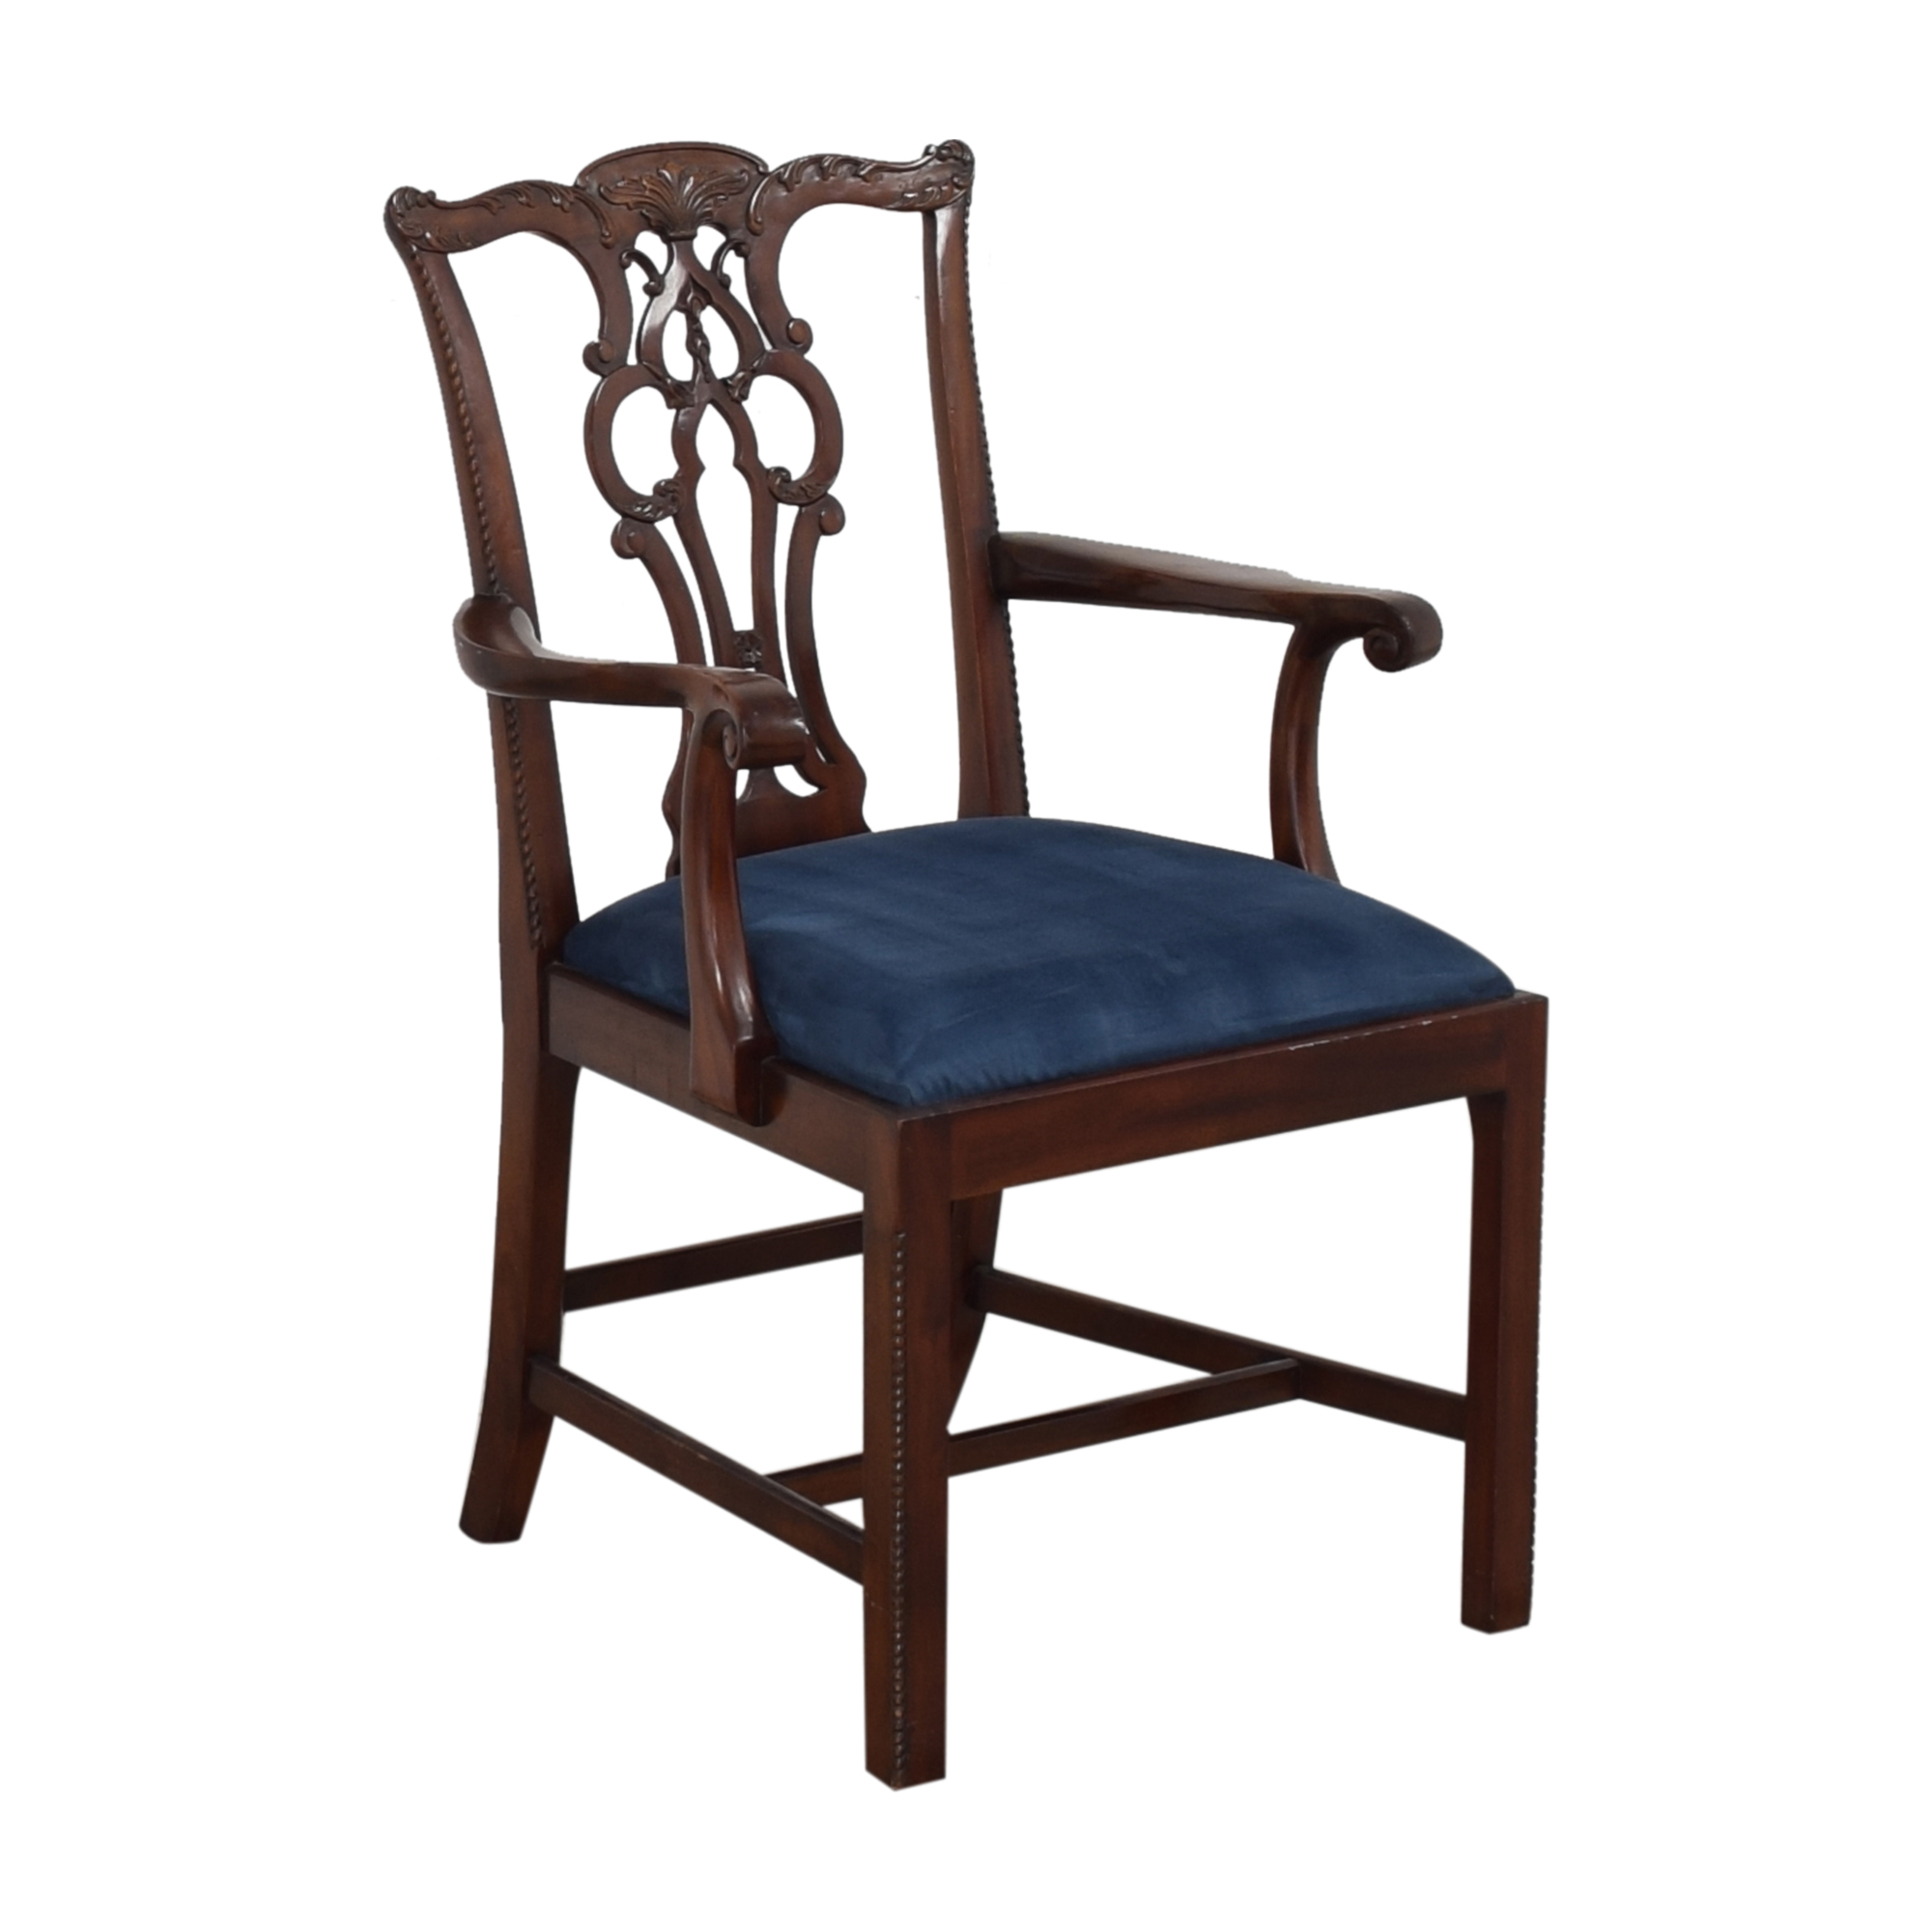 Maitland-Smith Maitland-Smith Chippendale Dining Arm Chair Dining Chairs